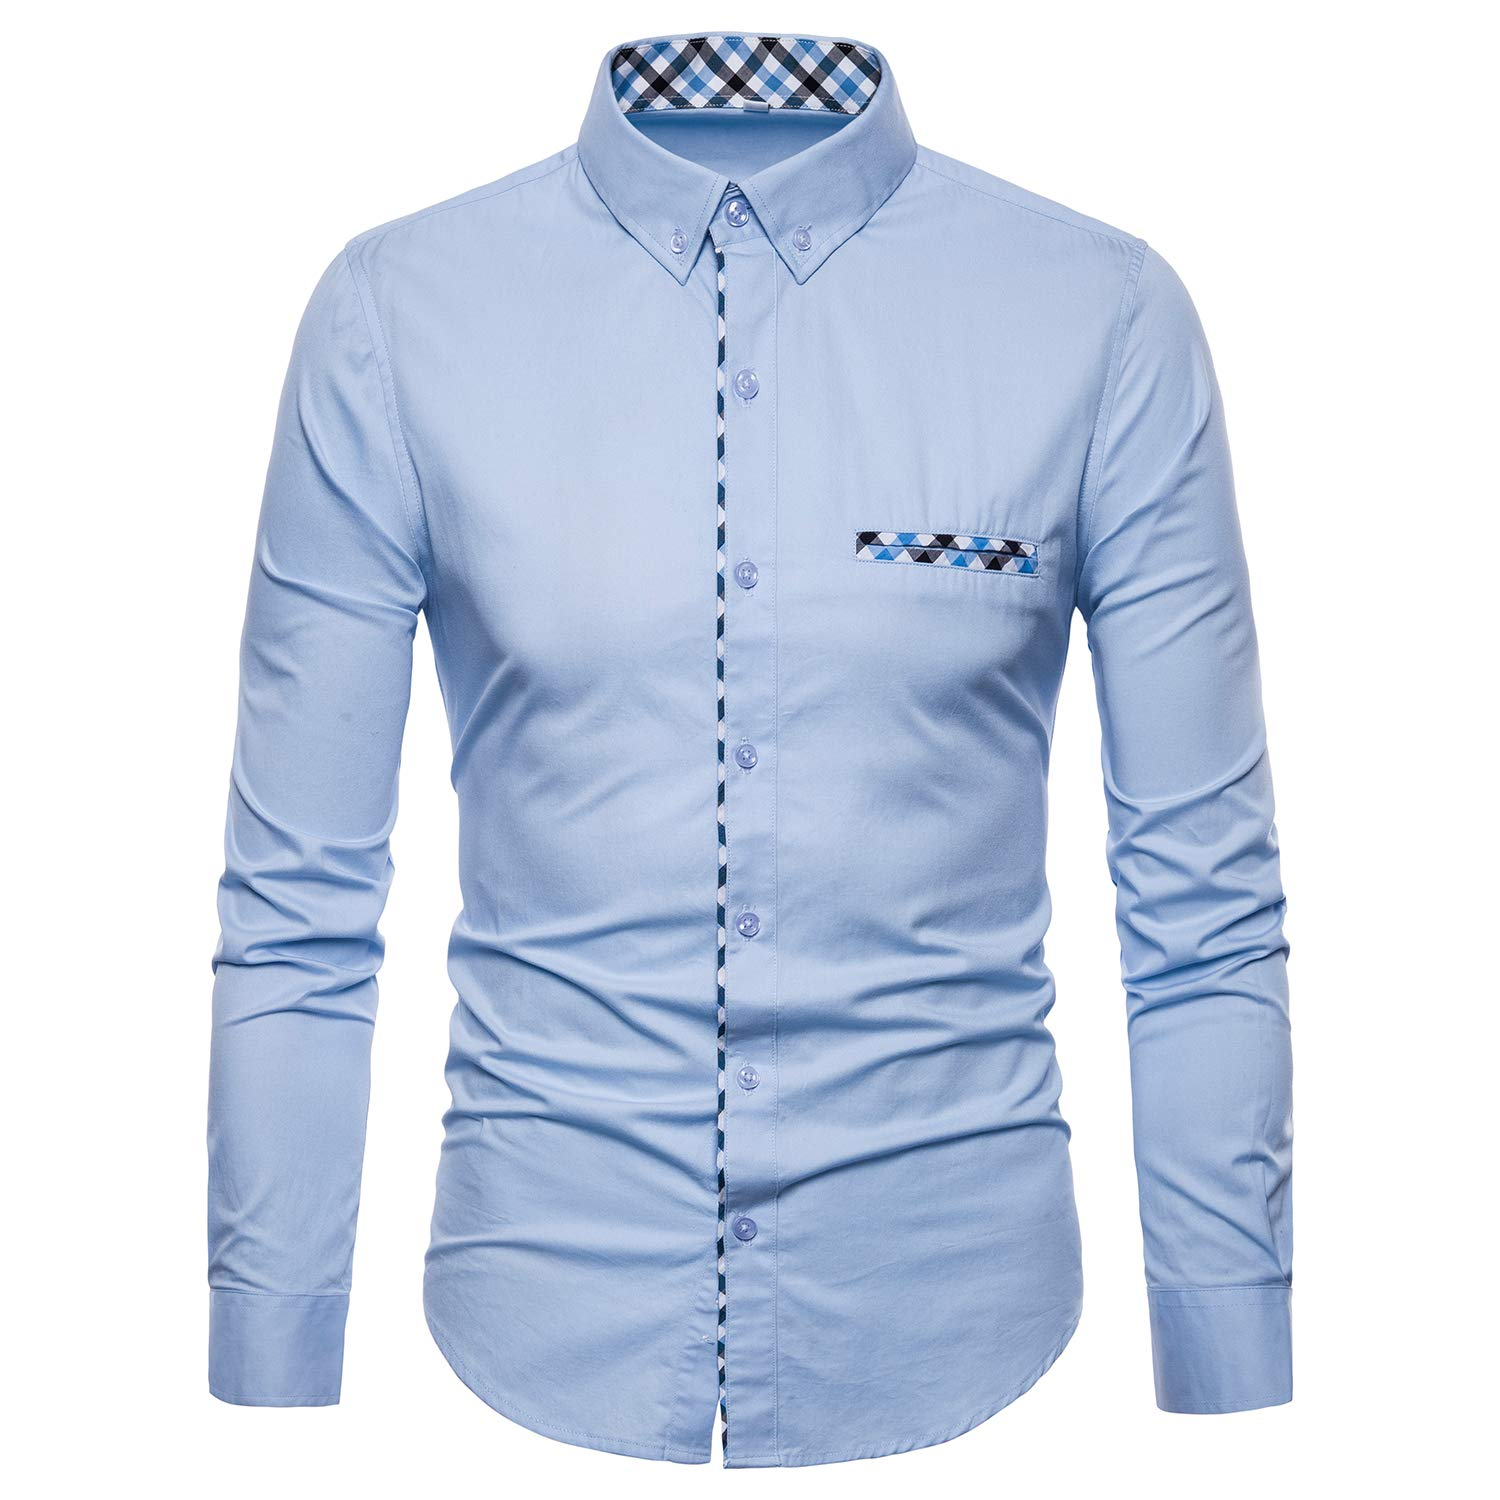 Manwan walk Mens Button Down Dress Shirts Premium Casual Inner Contrast Casual Slim Fit Shirt by Manwan walk